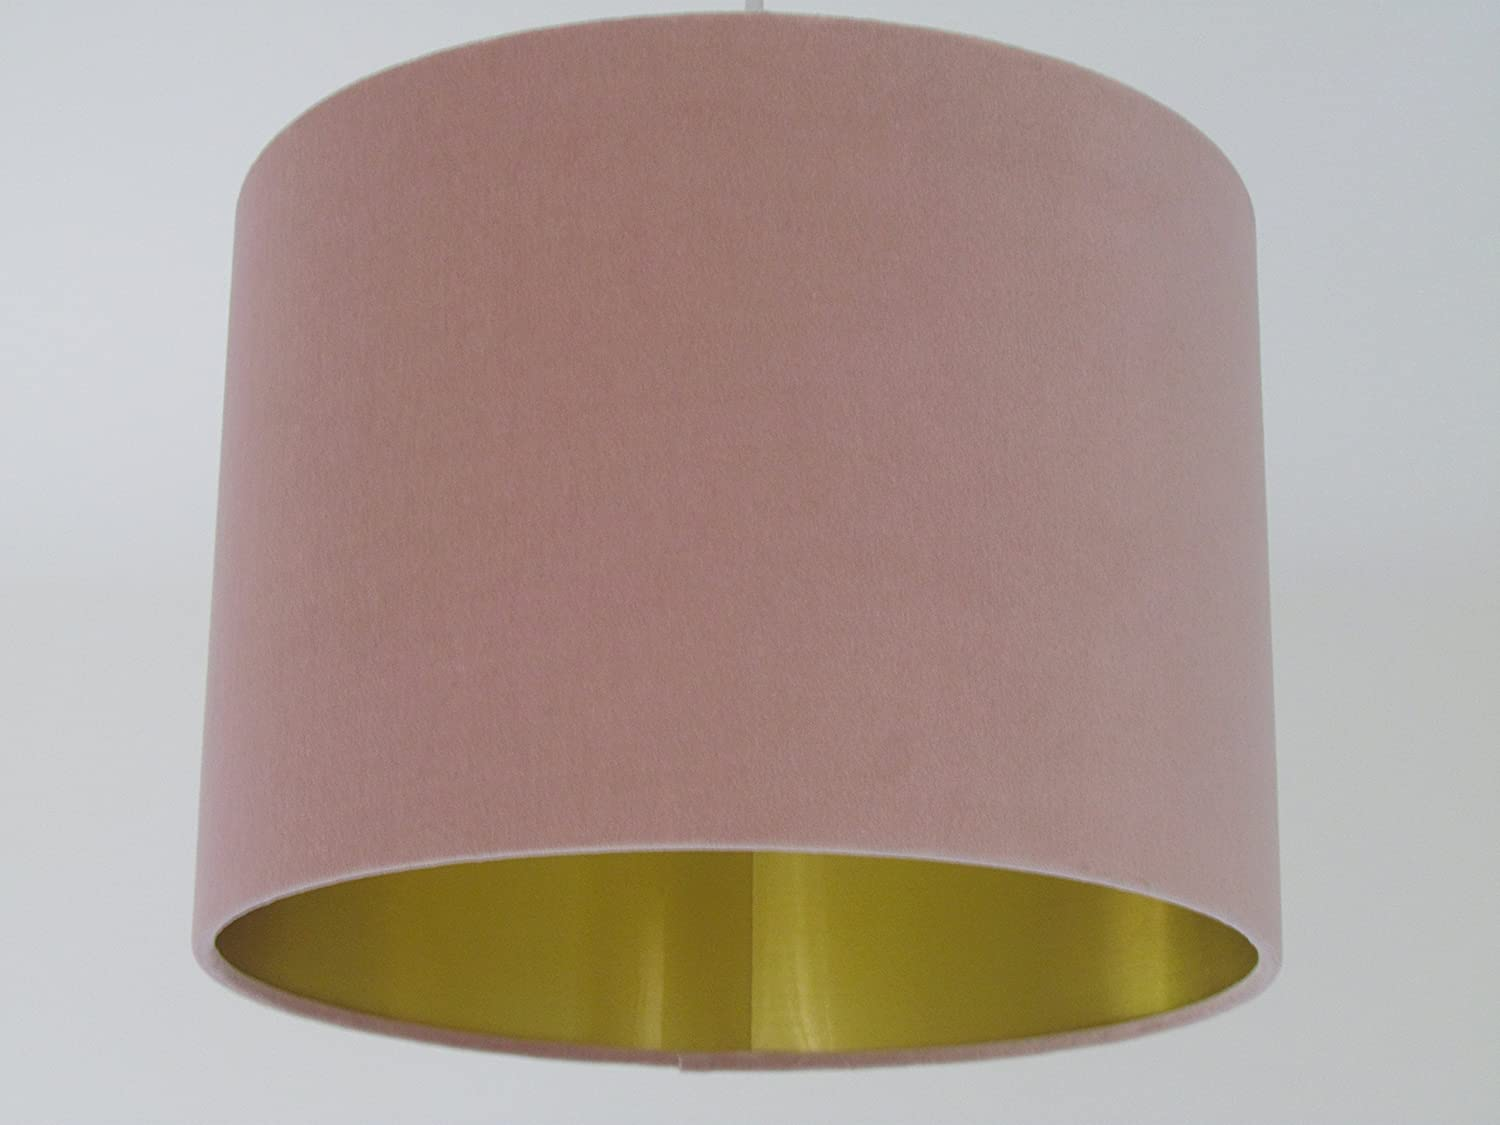 Blush Pink Oyster Velvet with Brushed Gold Metallic Lined Lampshade Lightshade All Sizes